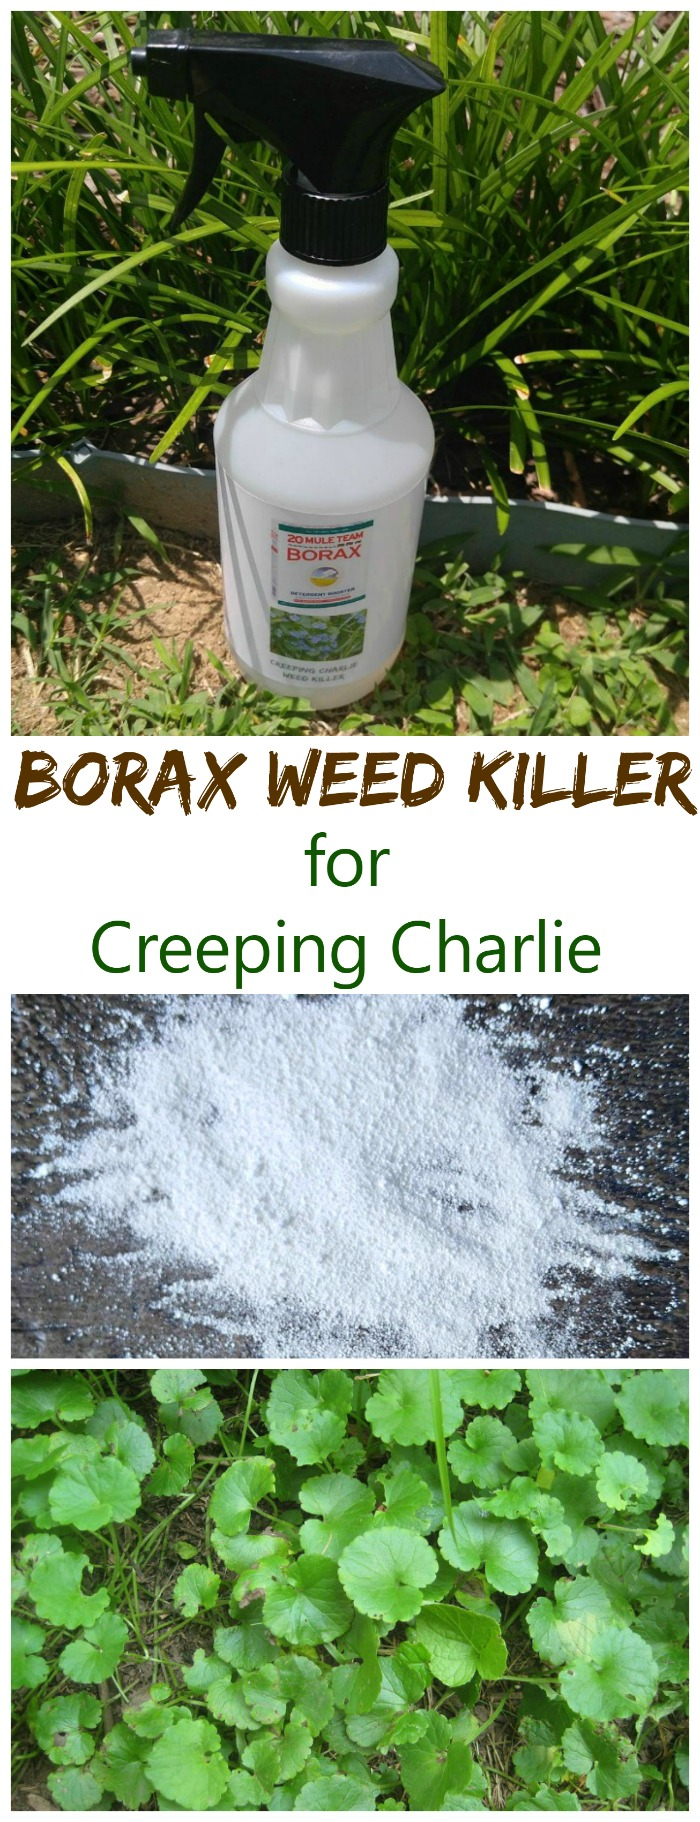 This Borax weed killer does a good job of controlling creeping Charlie in your lawns.